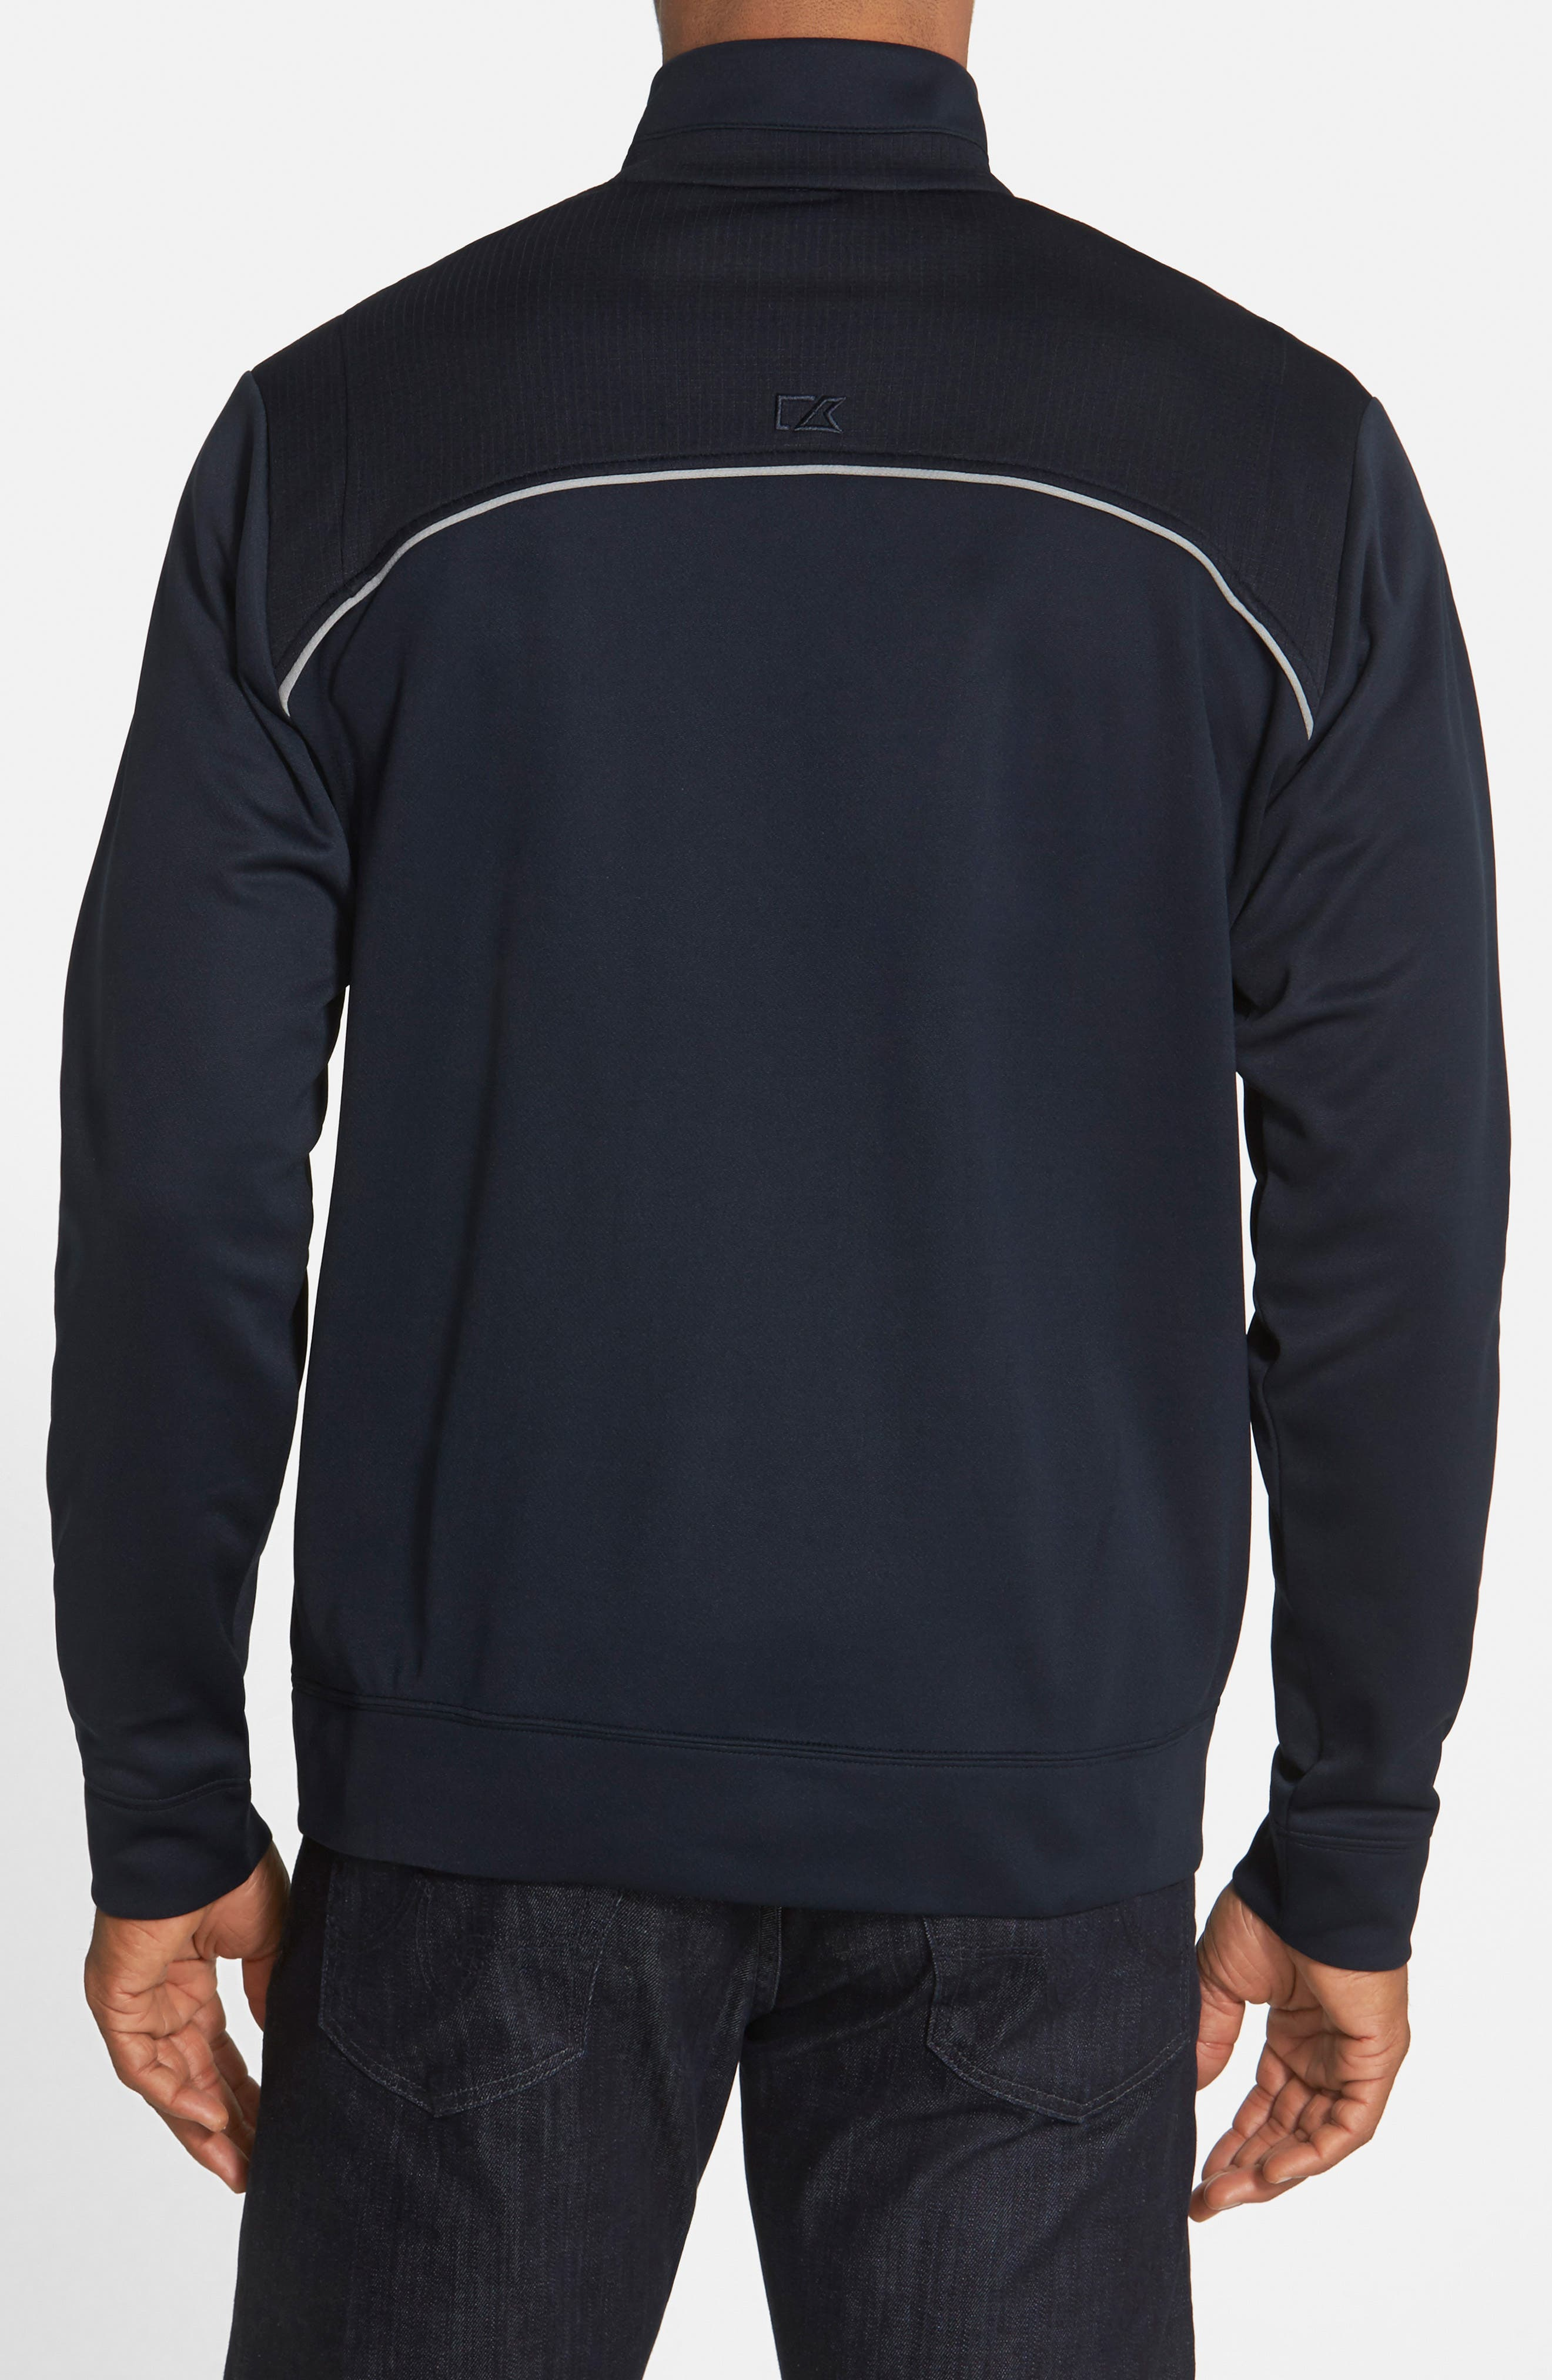 Ridge WeatherTec Wind & Water Resistant Pullover,                             Alternate thumbnail 5, color,                             NAVY BLUE